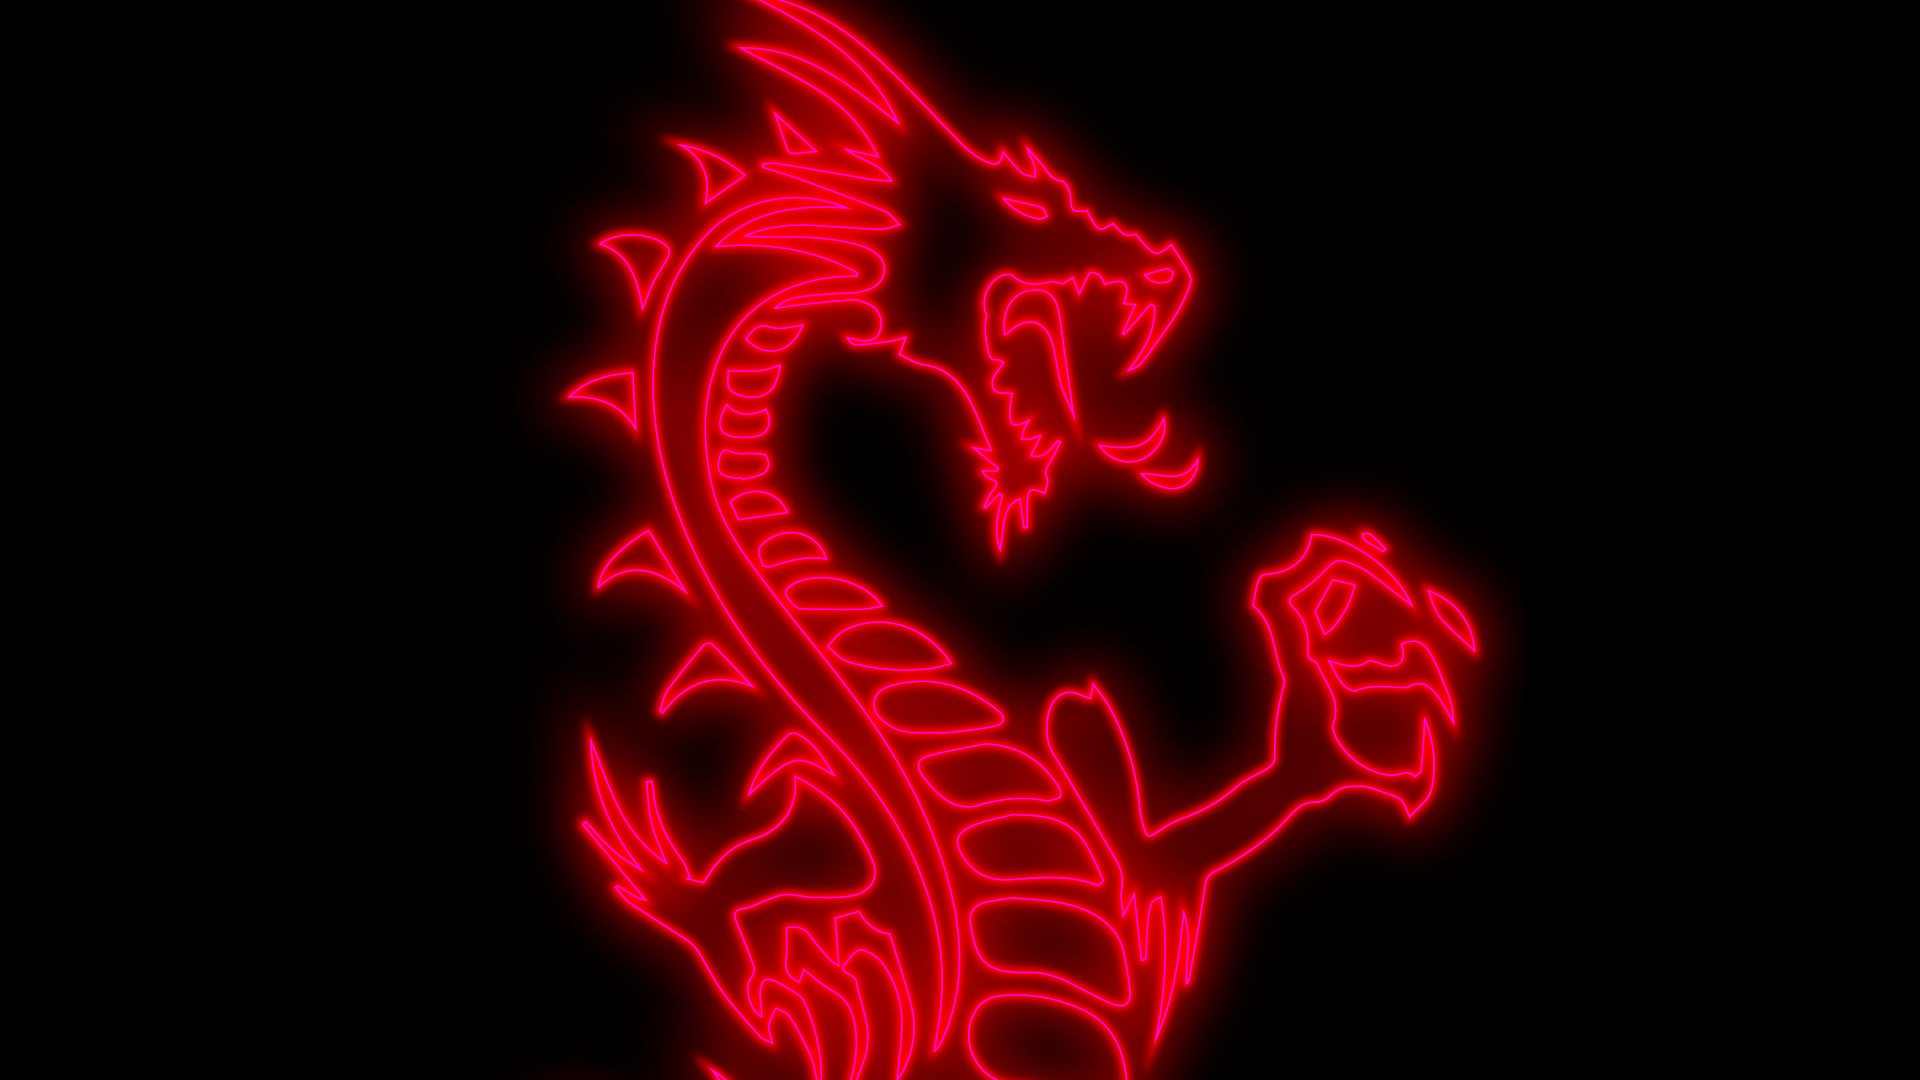 neon red dragon black wallpaper hd for desktop 1080p